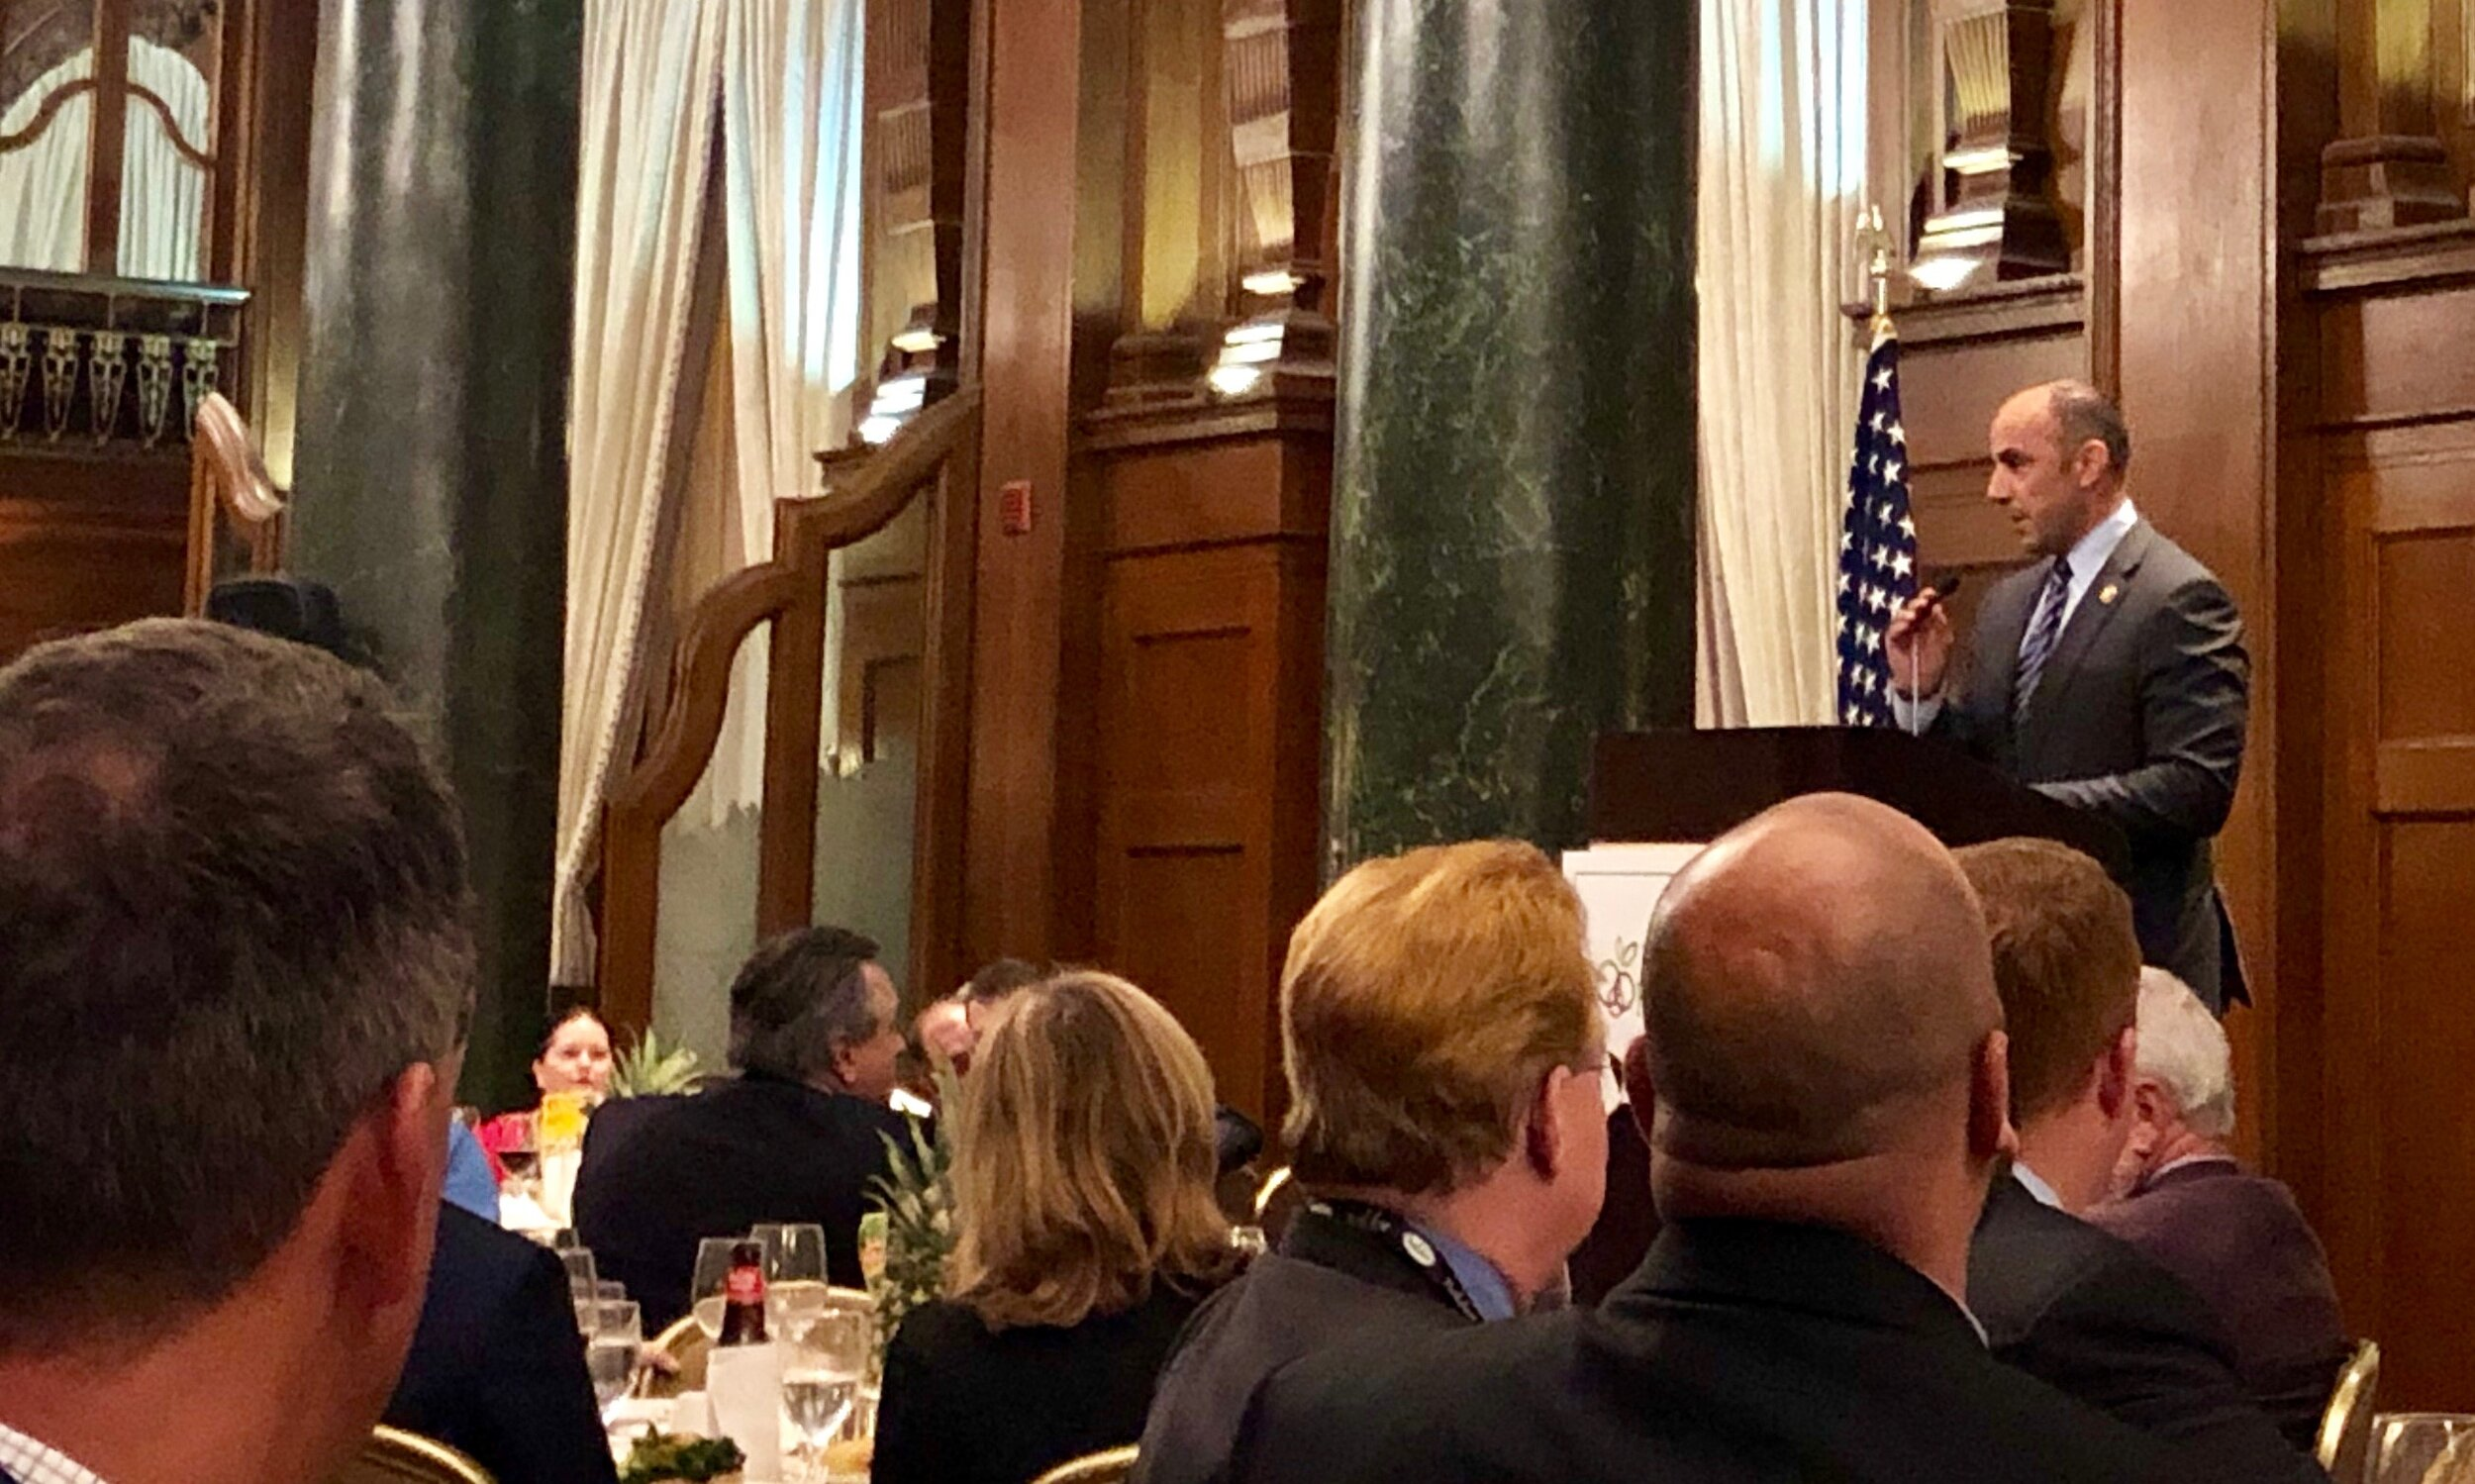 Jimmy Panetta, US Representative for California's 20th congressional district, speaking at the United FreshPAC dinner, at the Willard Hotel.